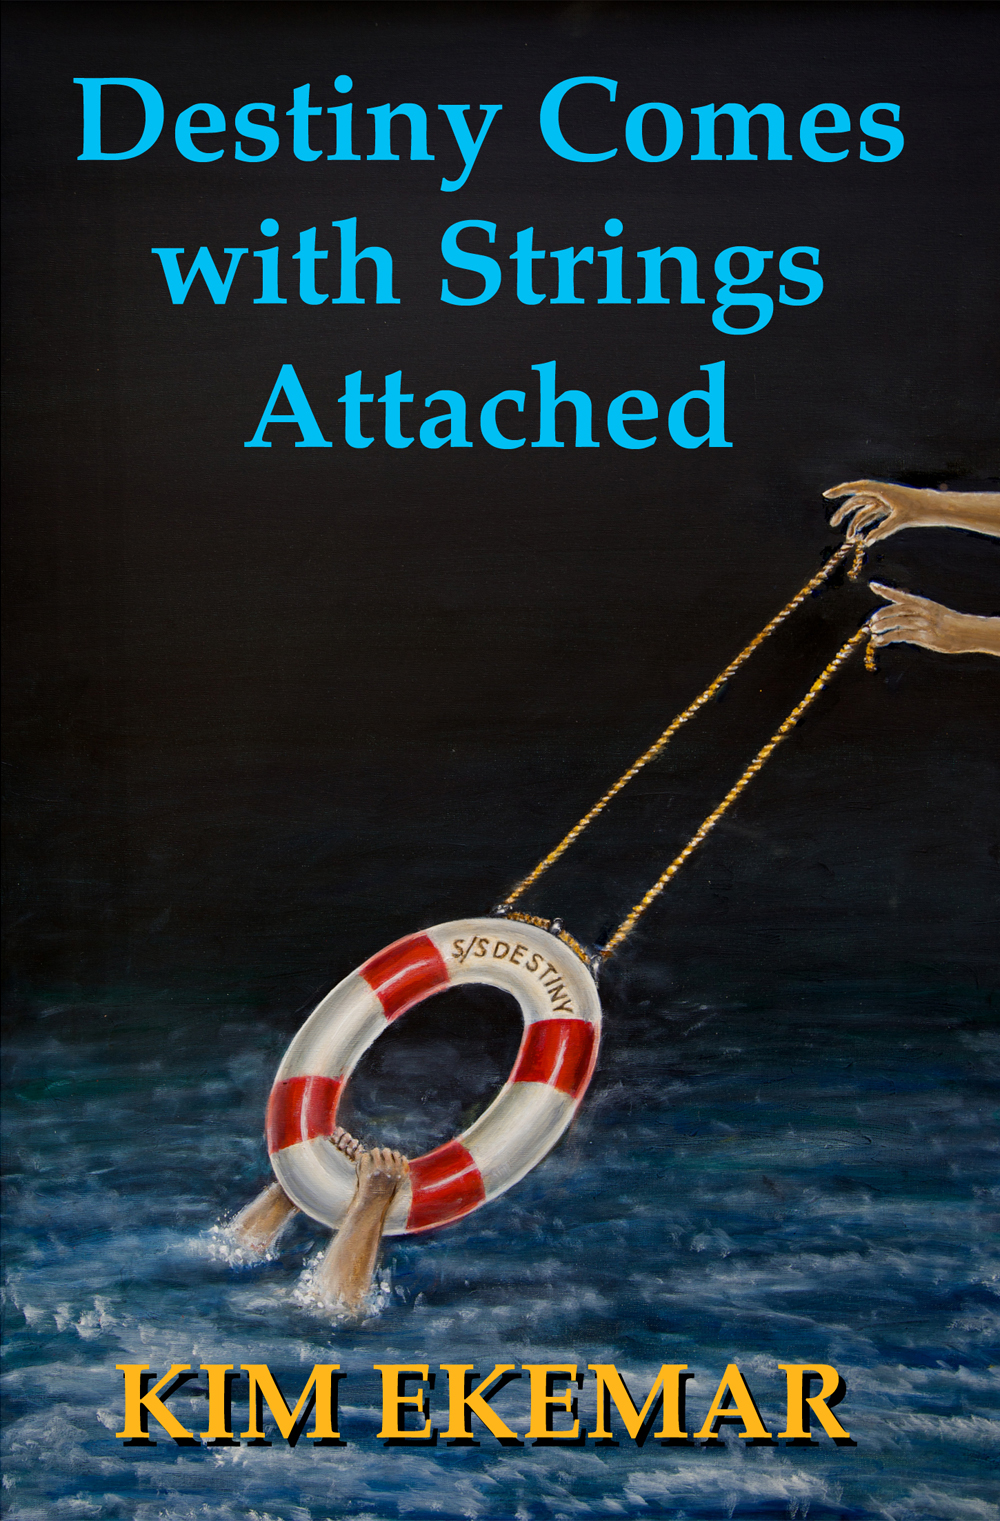 141213 EBOOK Destiny Comes with Strings Attached.jpg